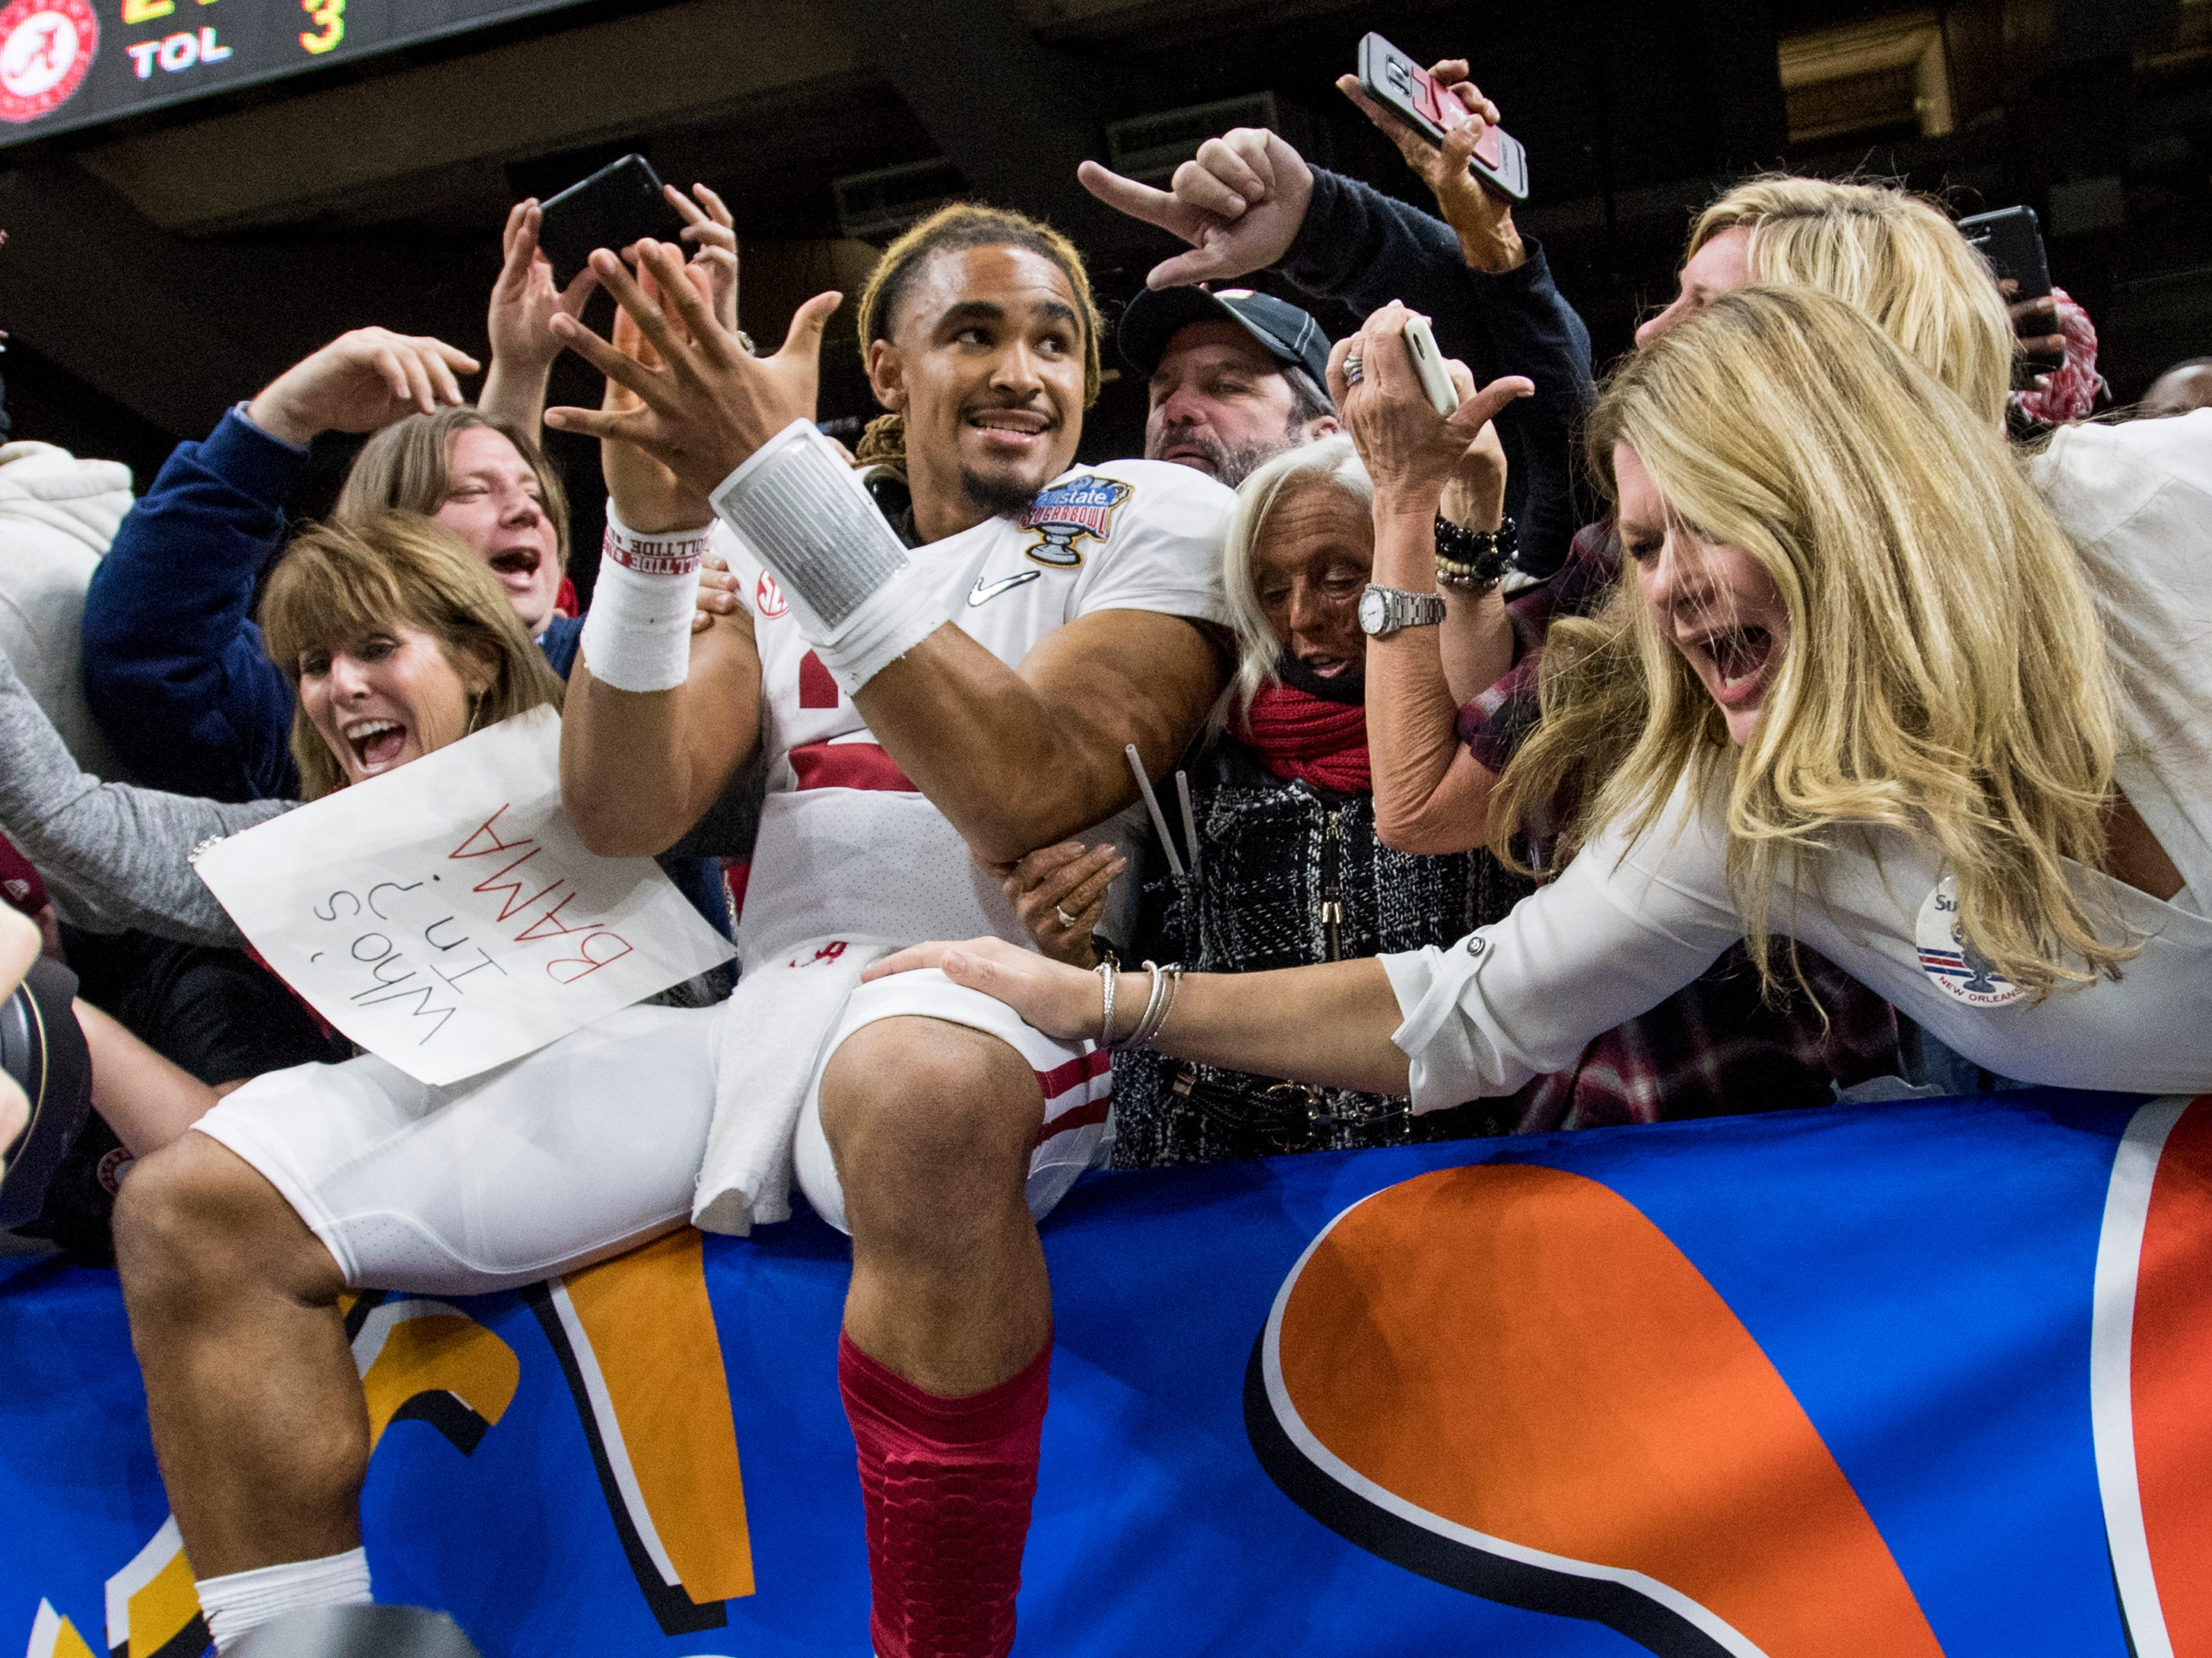 Alabama quarterback Jalen Hurts (2) celebrates with fans in the stands after defeating Clemson in the Sugar Bowl at the Superdome in New Orleans, La. on Monday January 1, 2018.